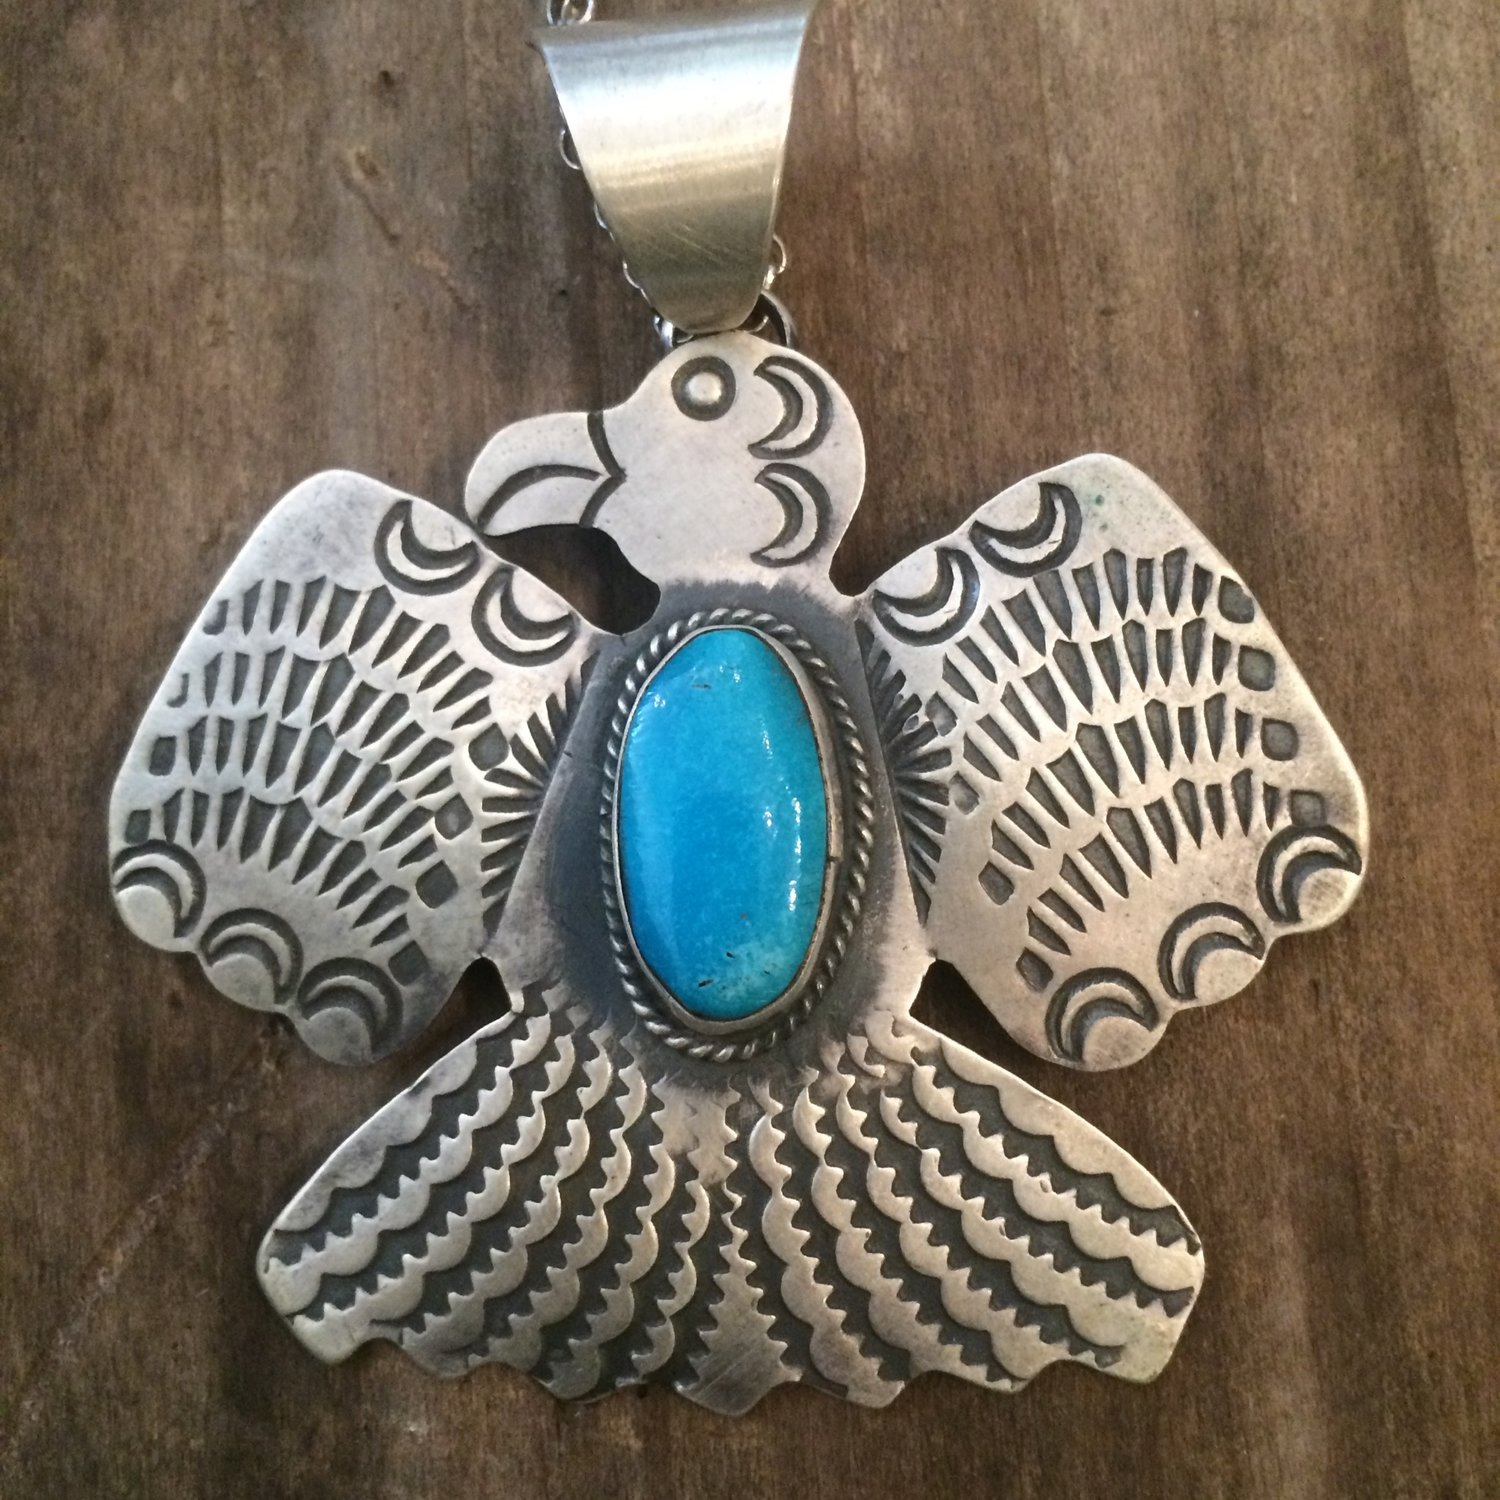 jr necklace pendant paulmichaeldesign eagle buy a handmade by ruger necklac williams phoenix custom hank to order made